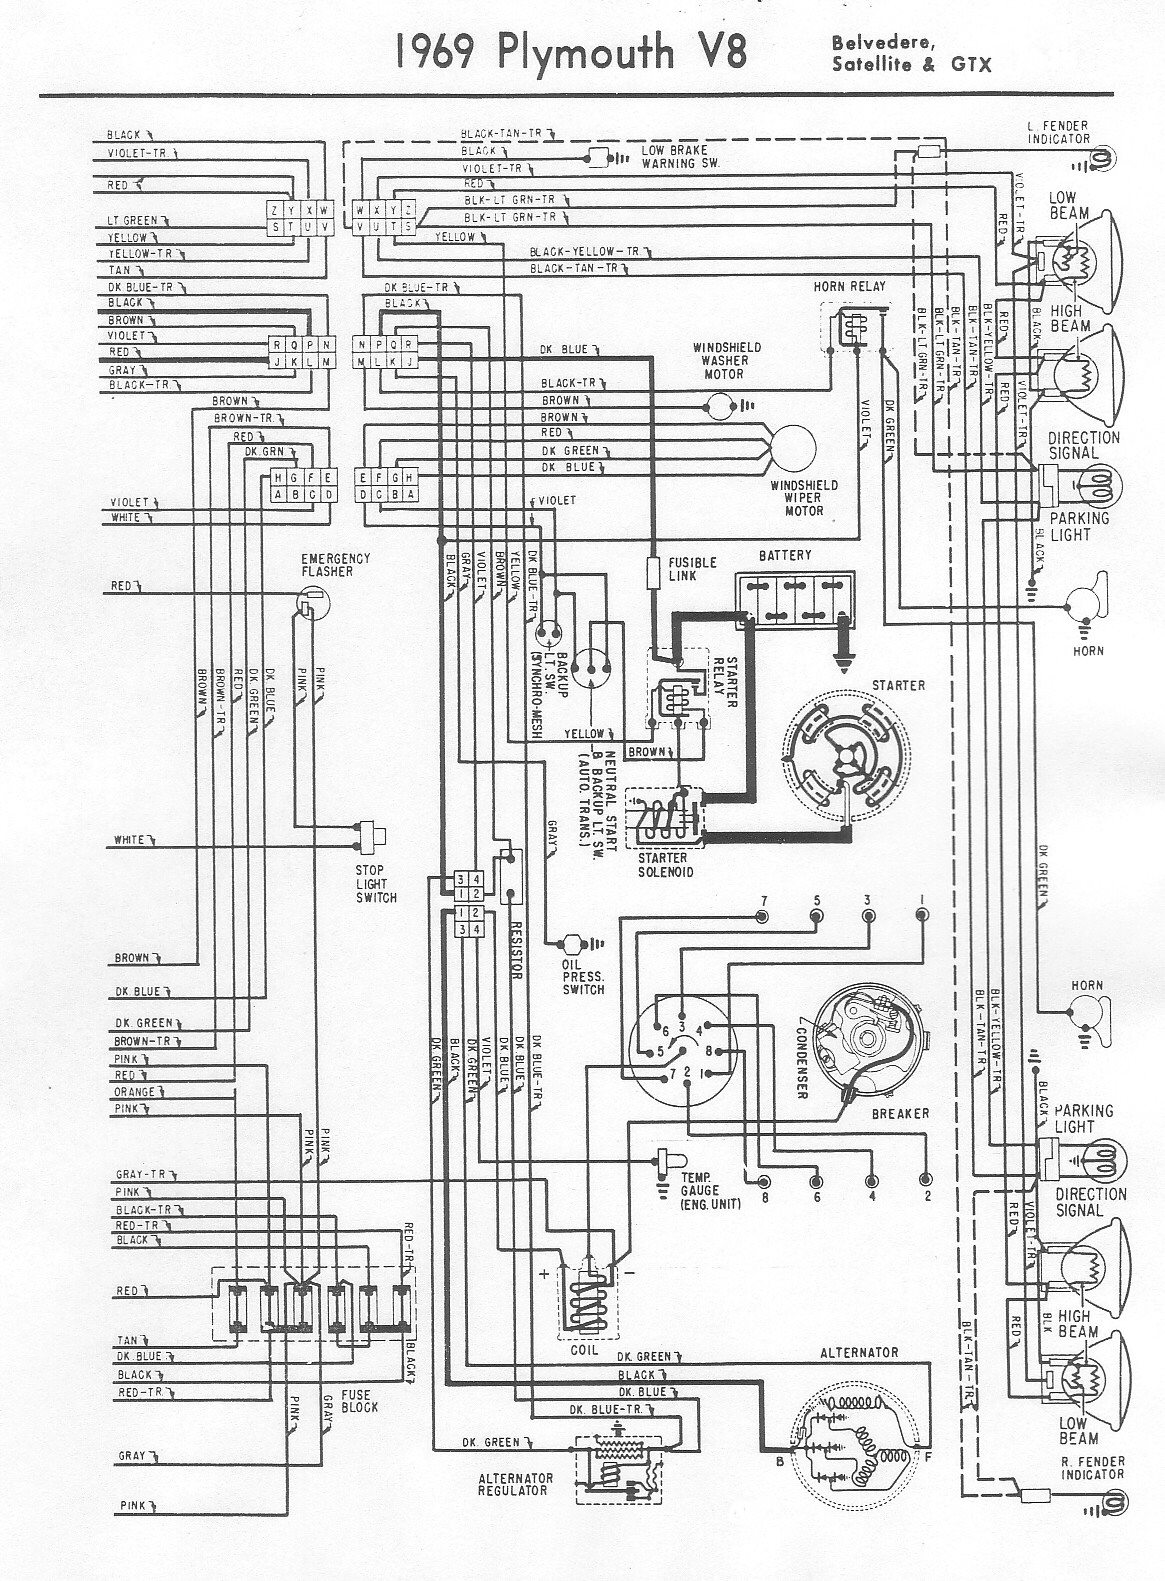 hight resolution of impala horn wiring diagram free picture wiring diagram schematic wiring diagram file name 282724d1353431121 4 dpdt light switch wiring